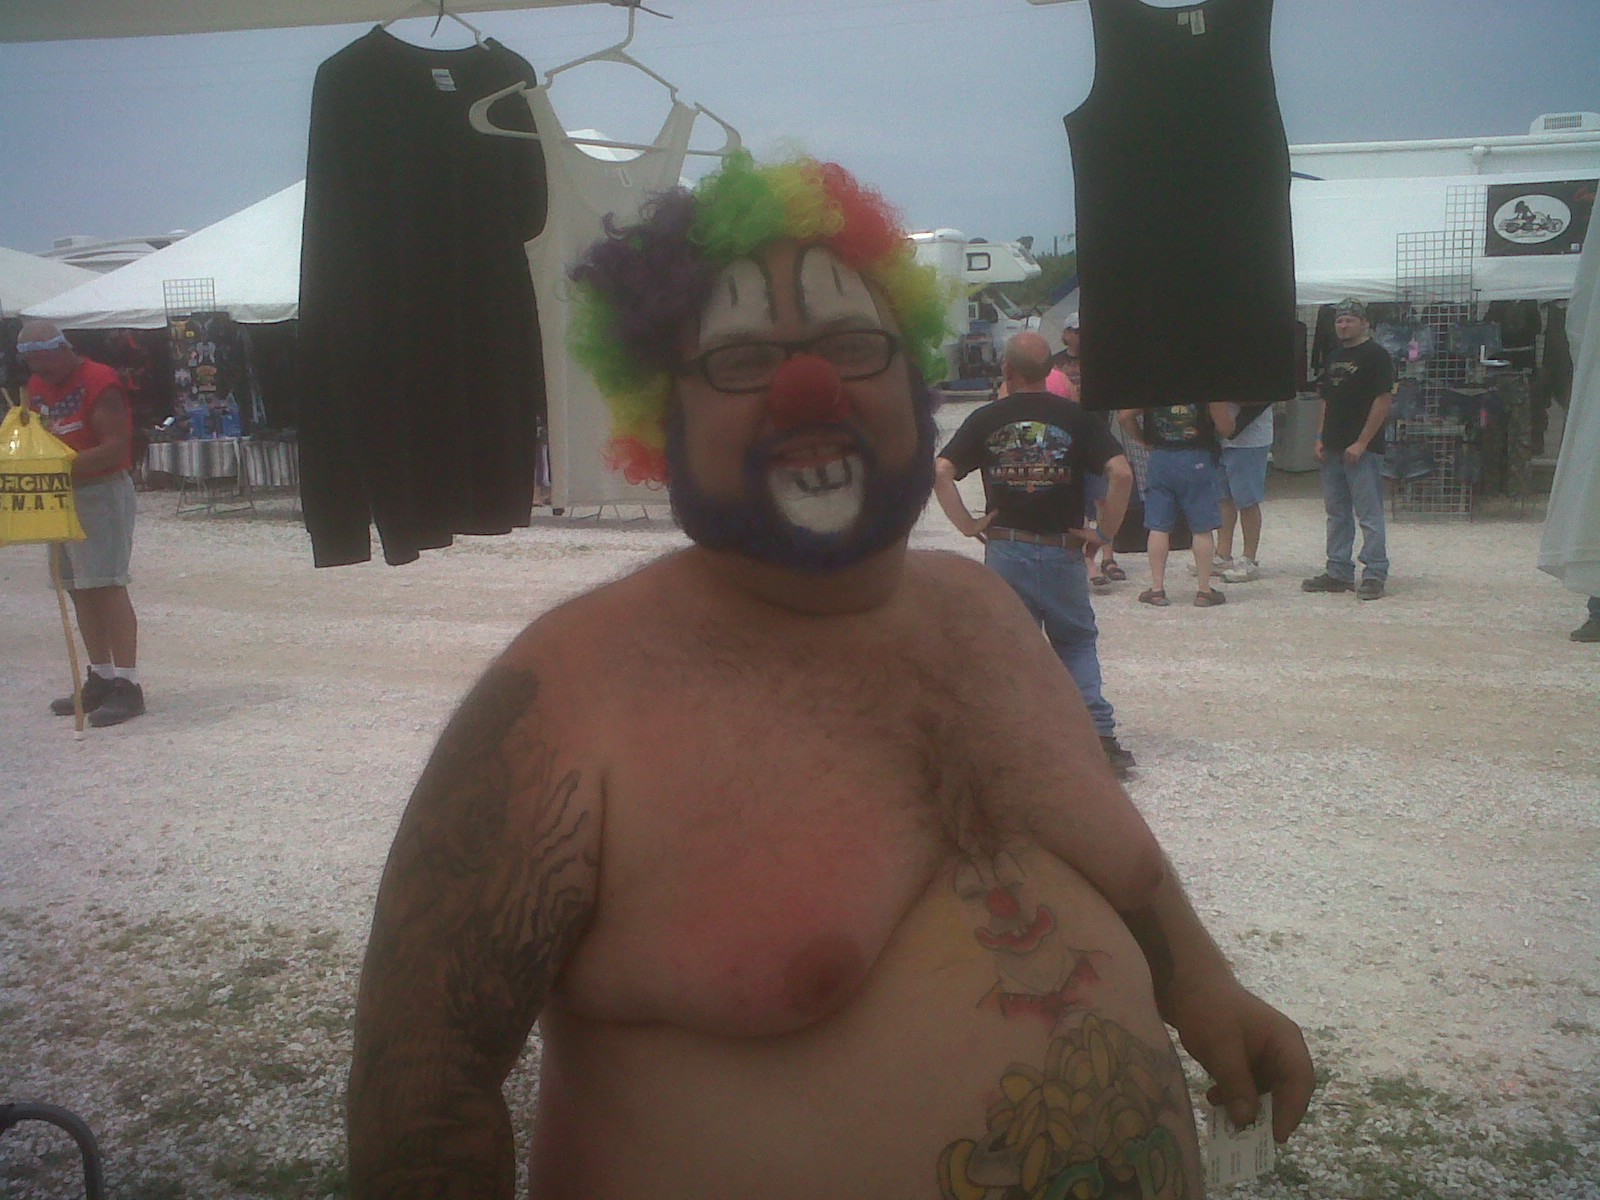 Clown man. Surprisingly, skinny compared to many here.